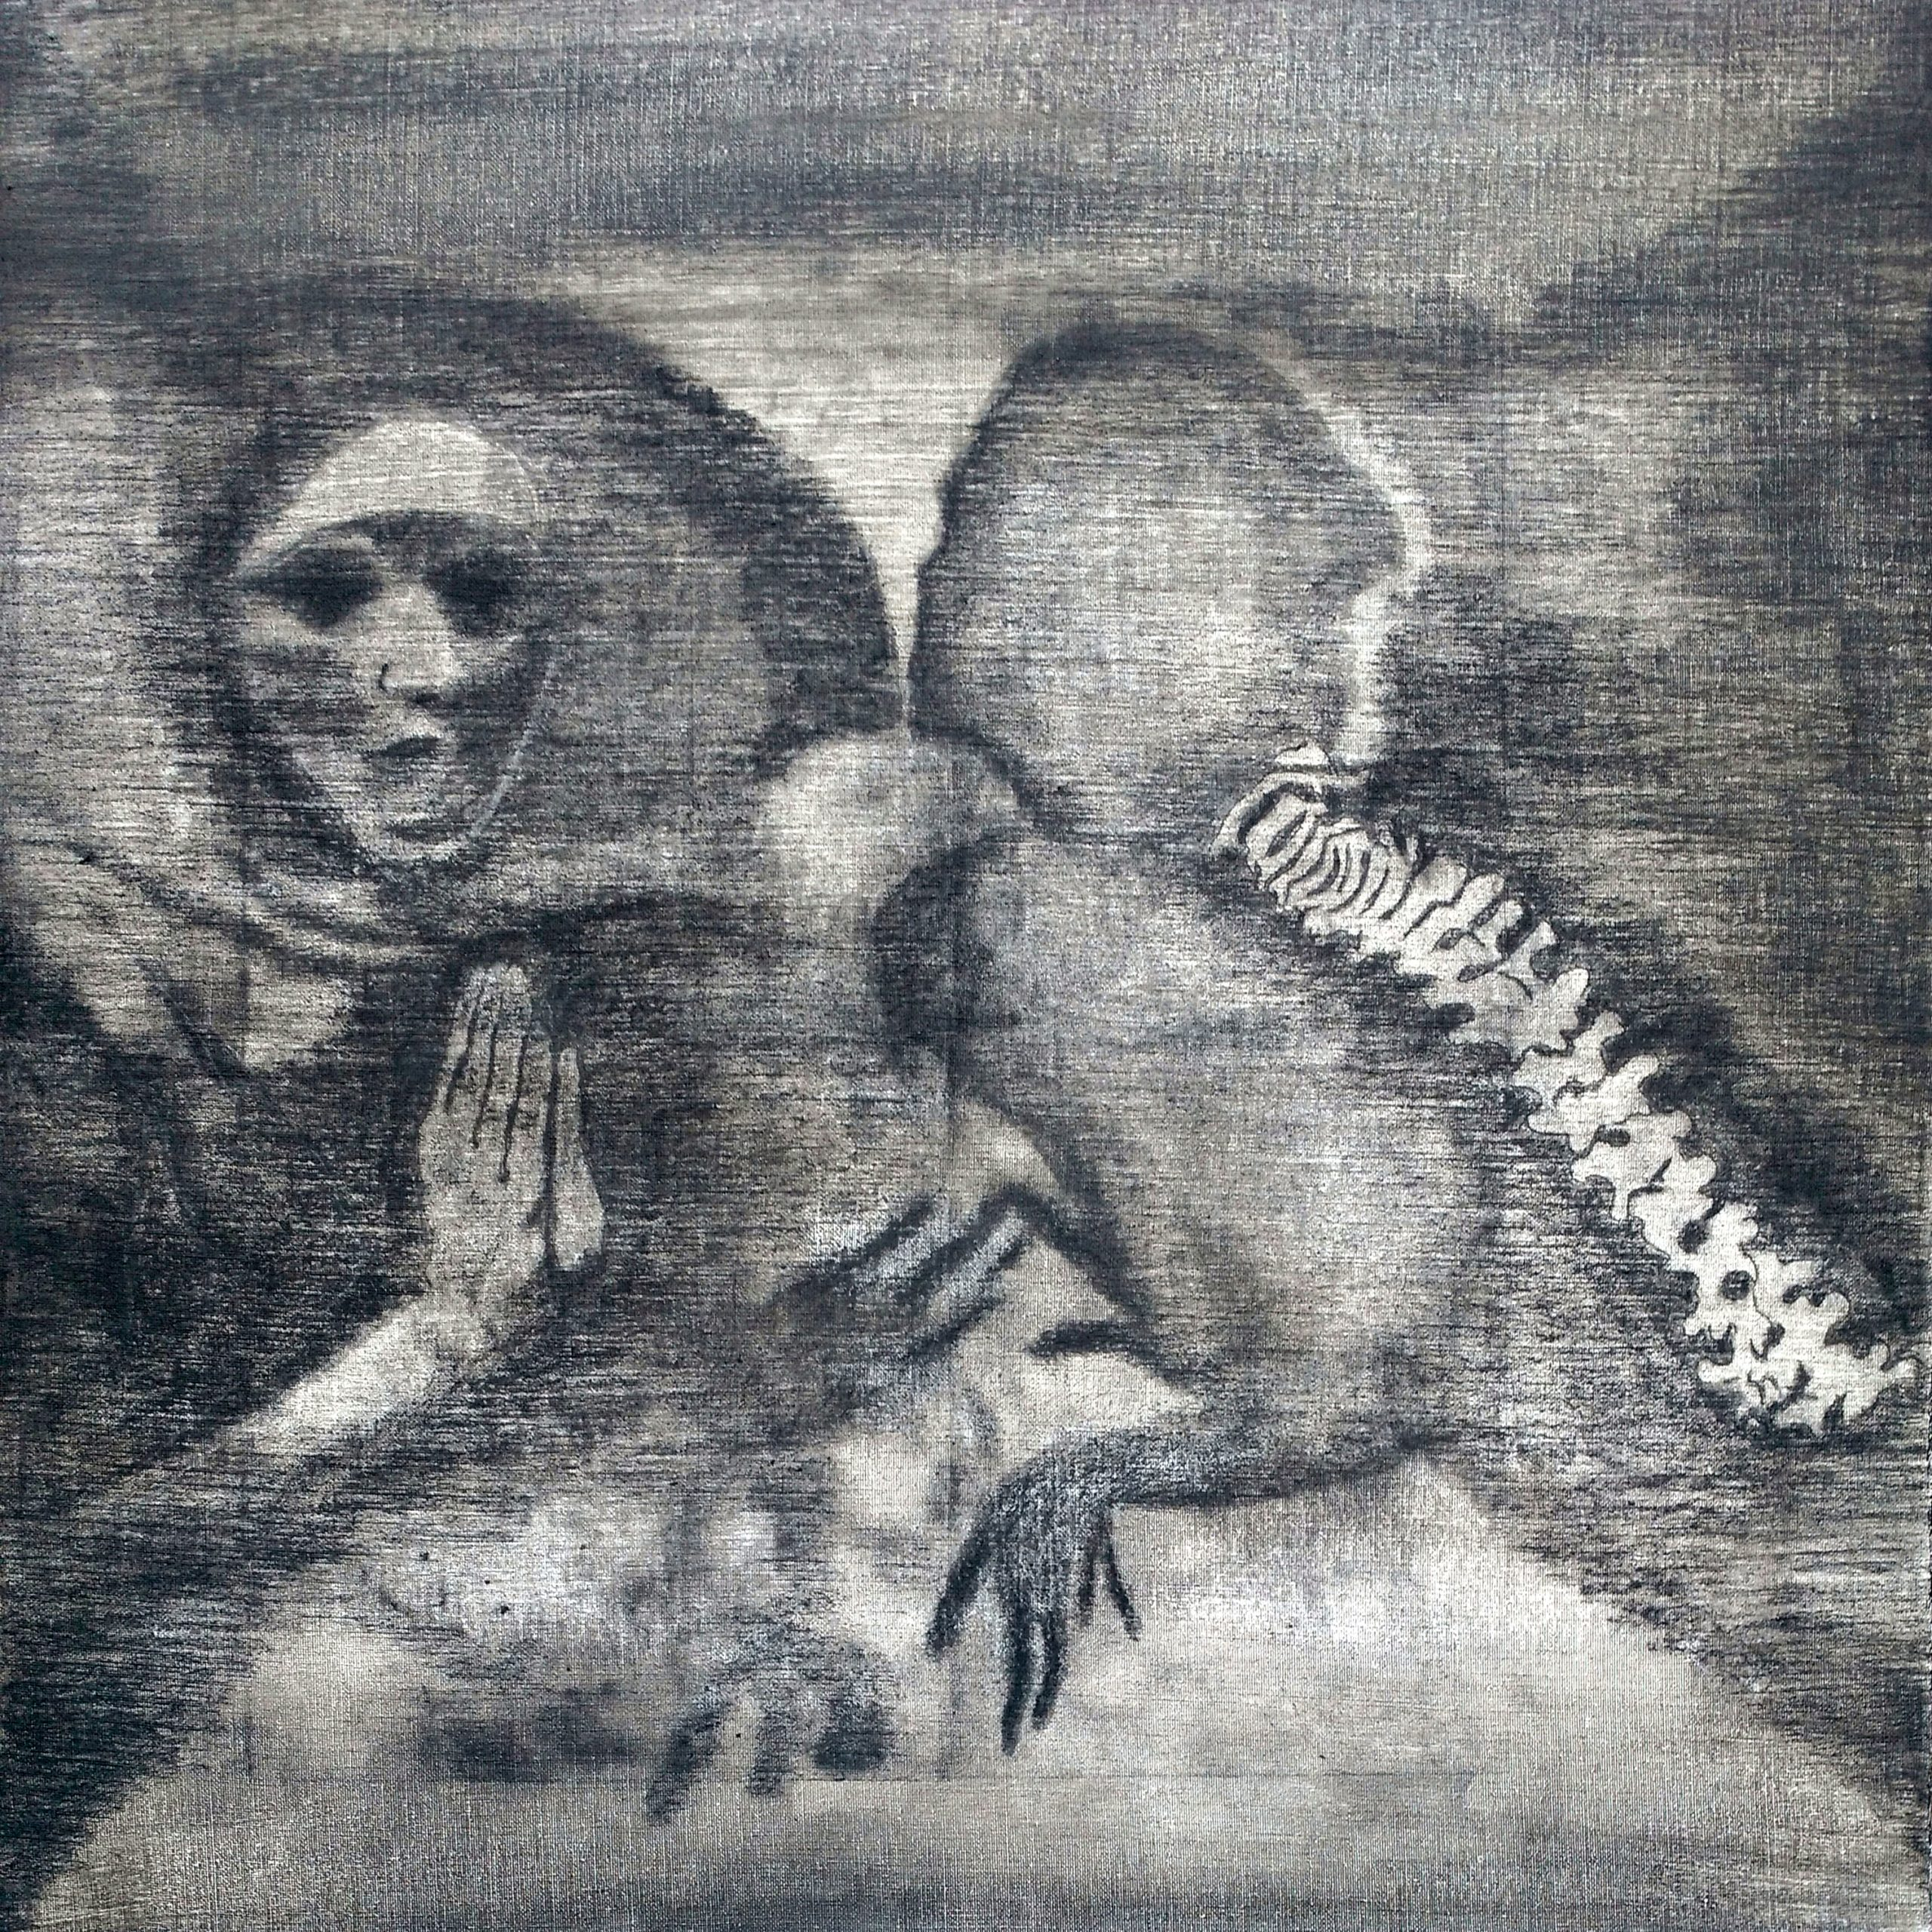 skeleton staring at it's reflection charcoal drawing